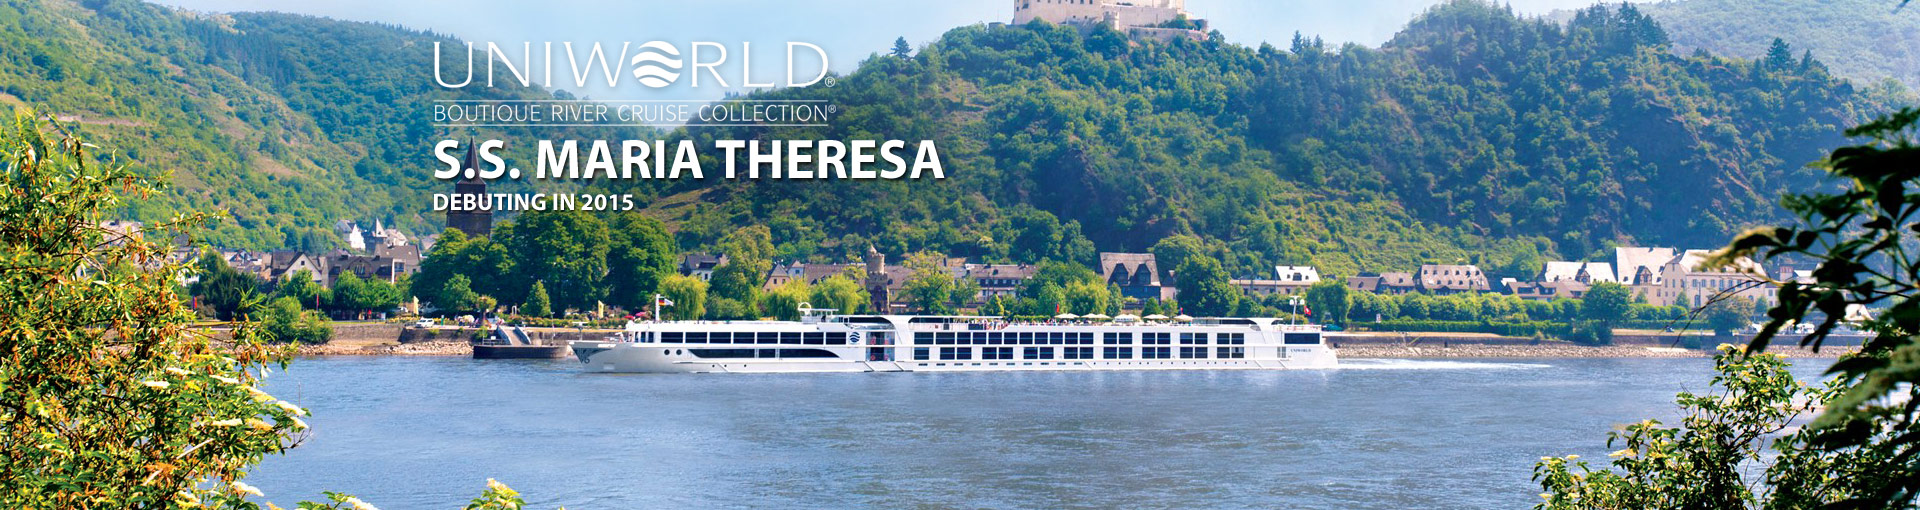 Uniworld River Cruises S.S. Maria Theresa